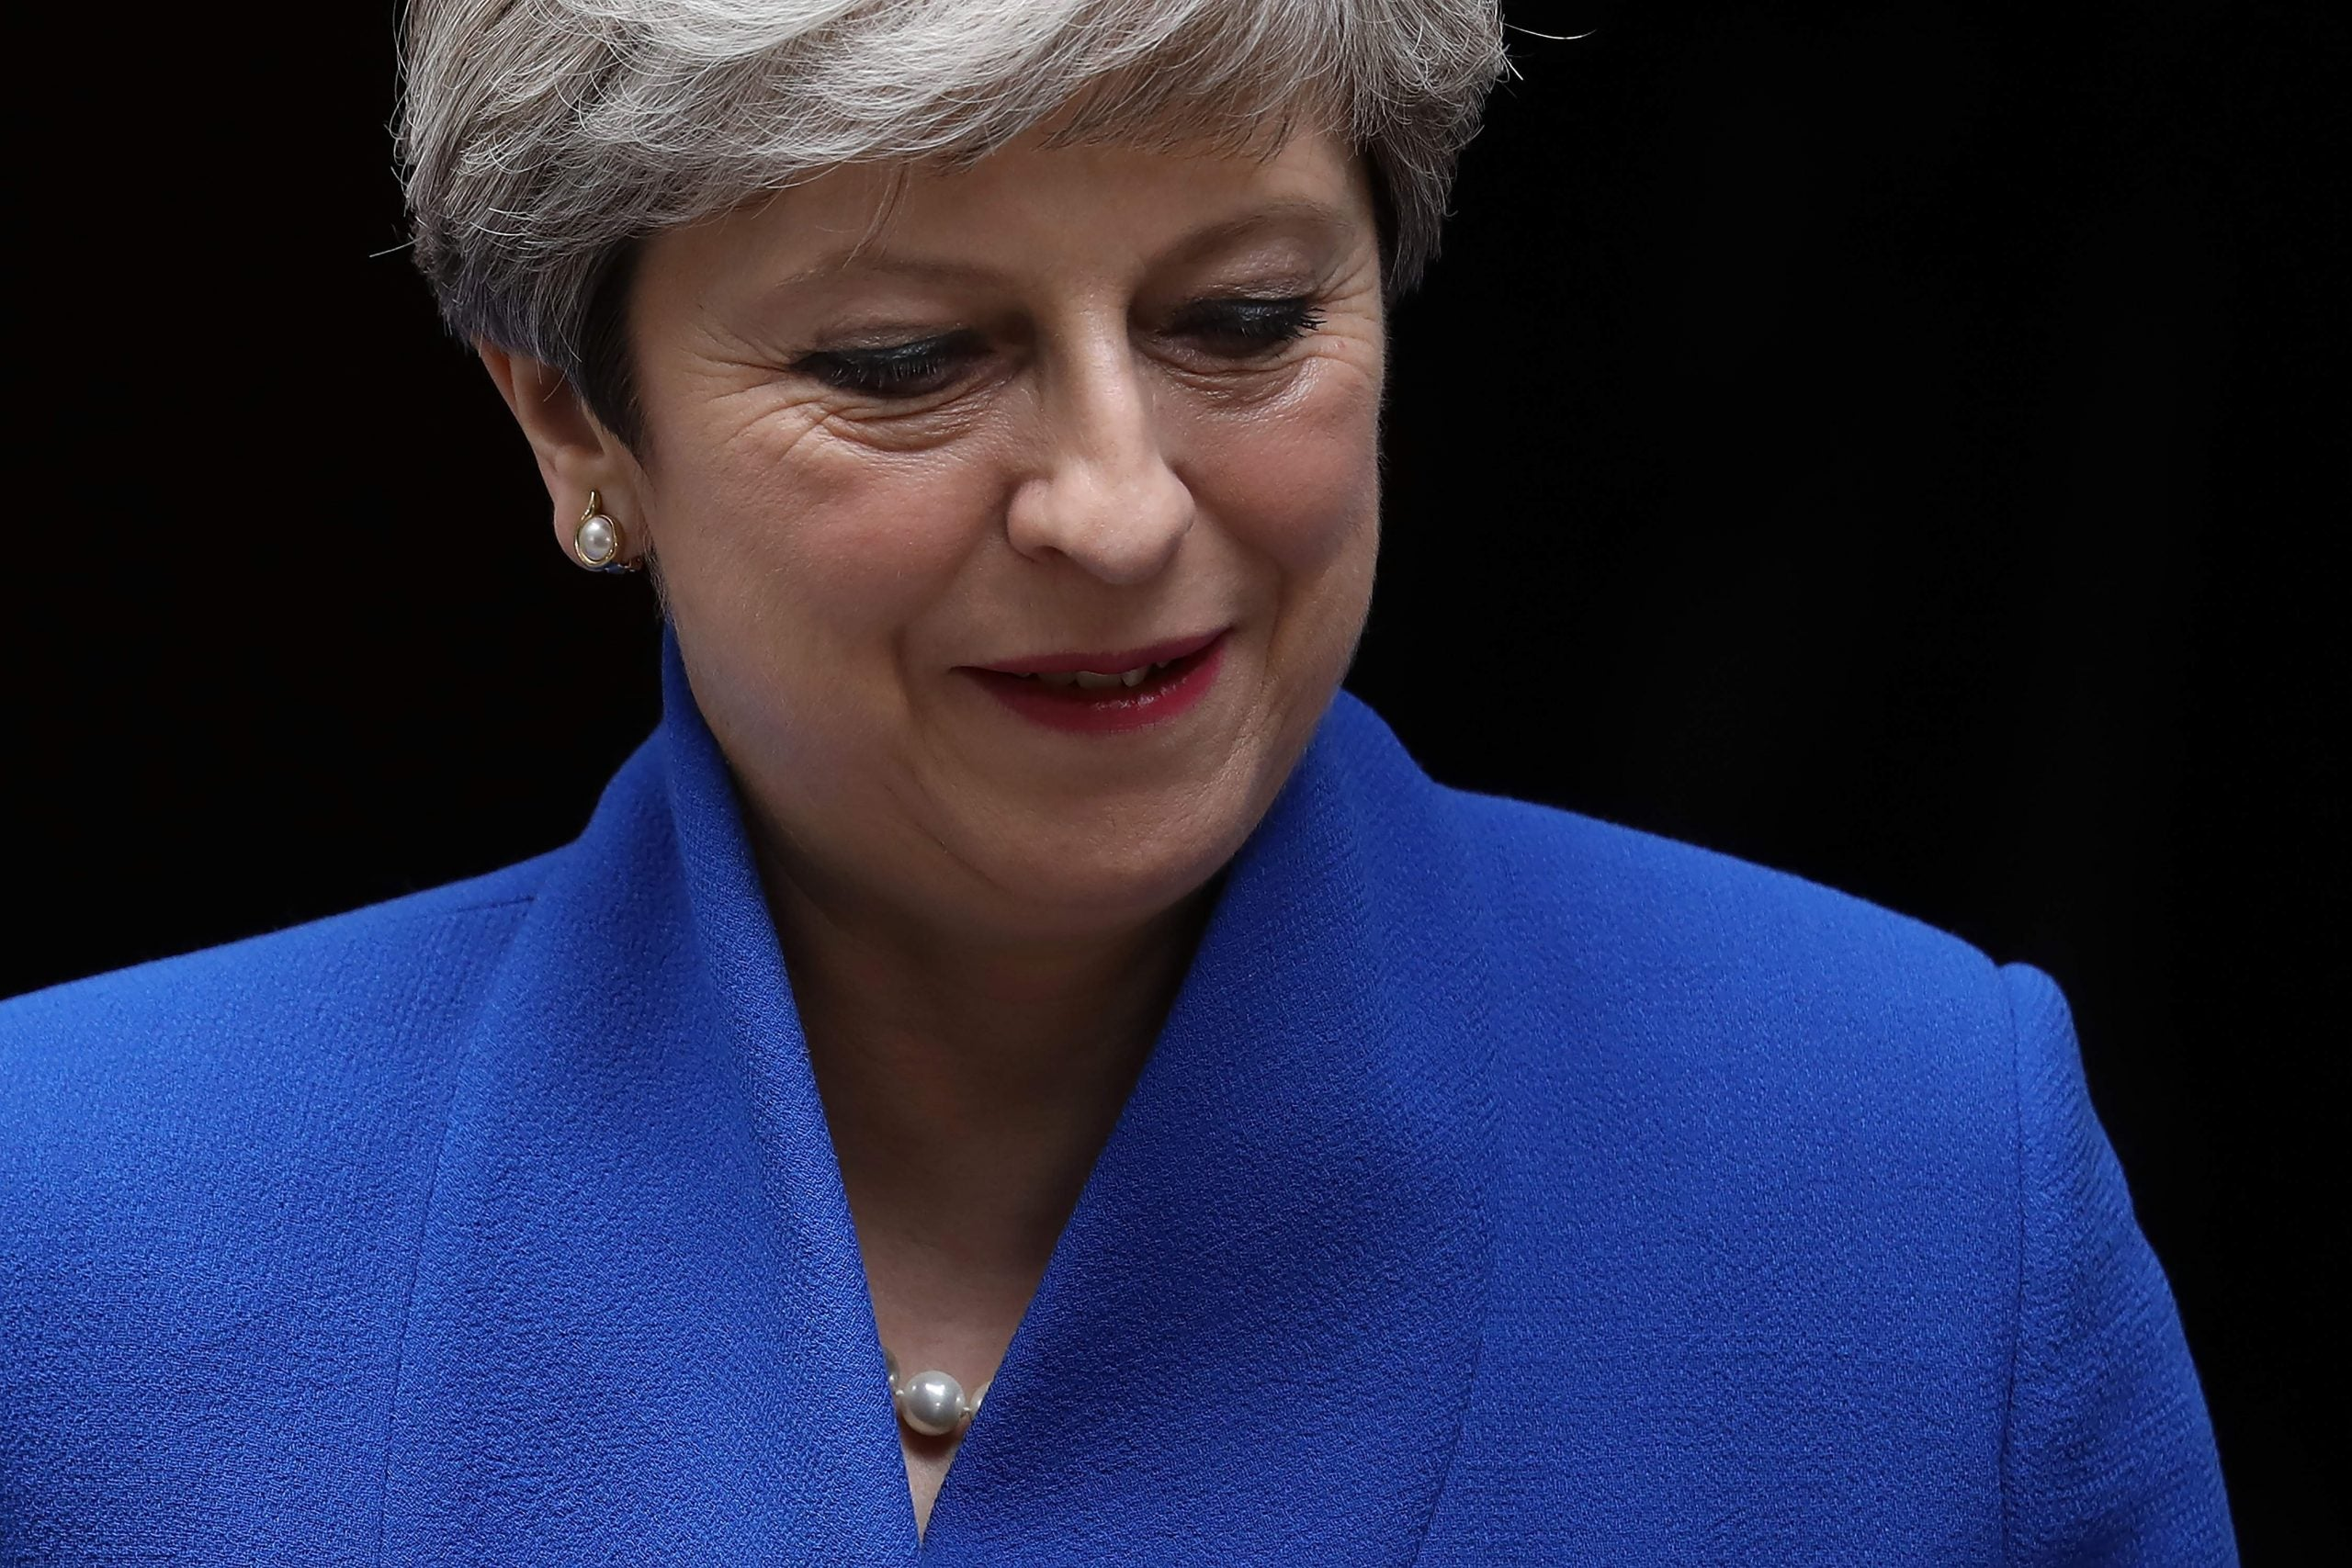 Theresa May has lost her mandate for Brexit - MPs should make that clear